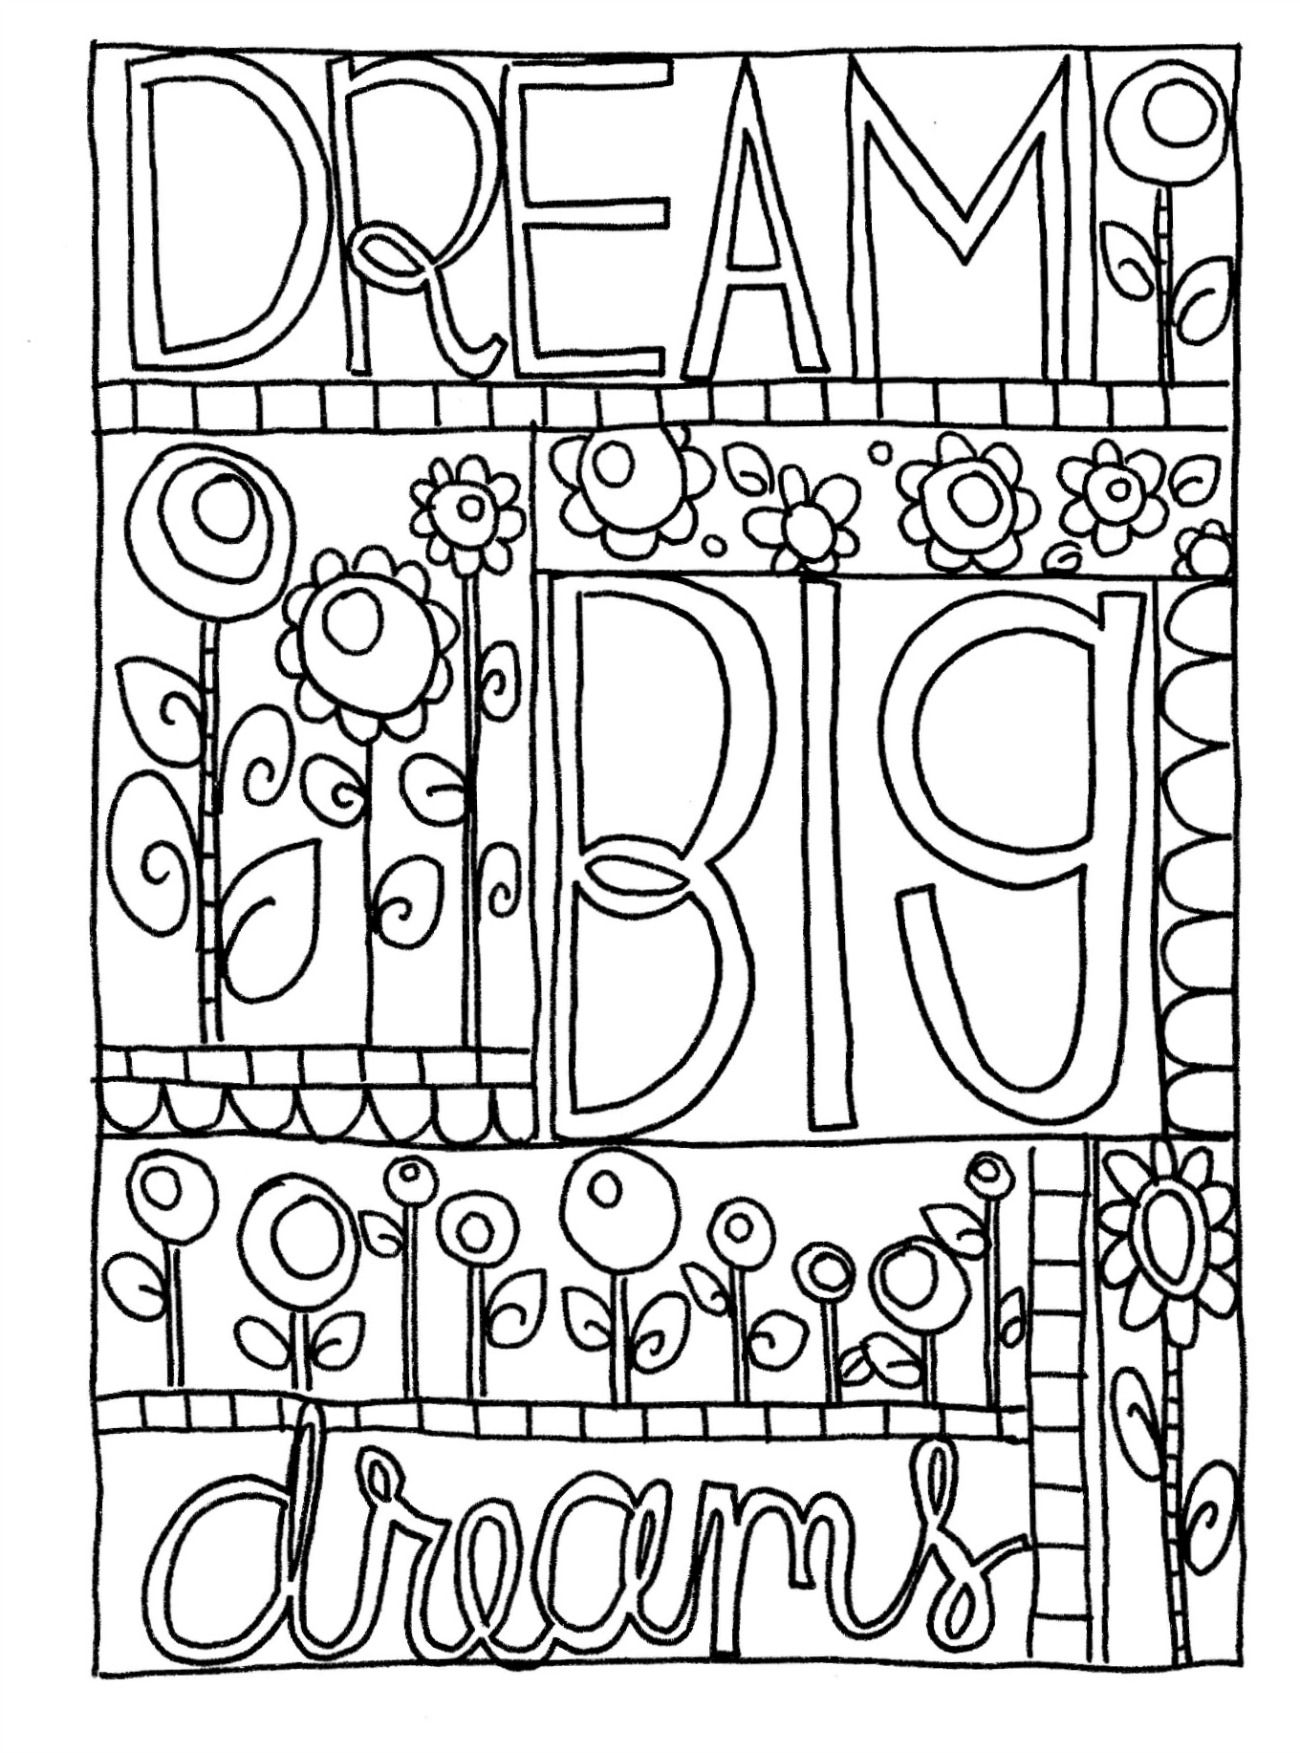 kids drawings for colouring doodle coloring pages best coloring pages for kids drawings for kids colouring